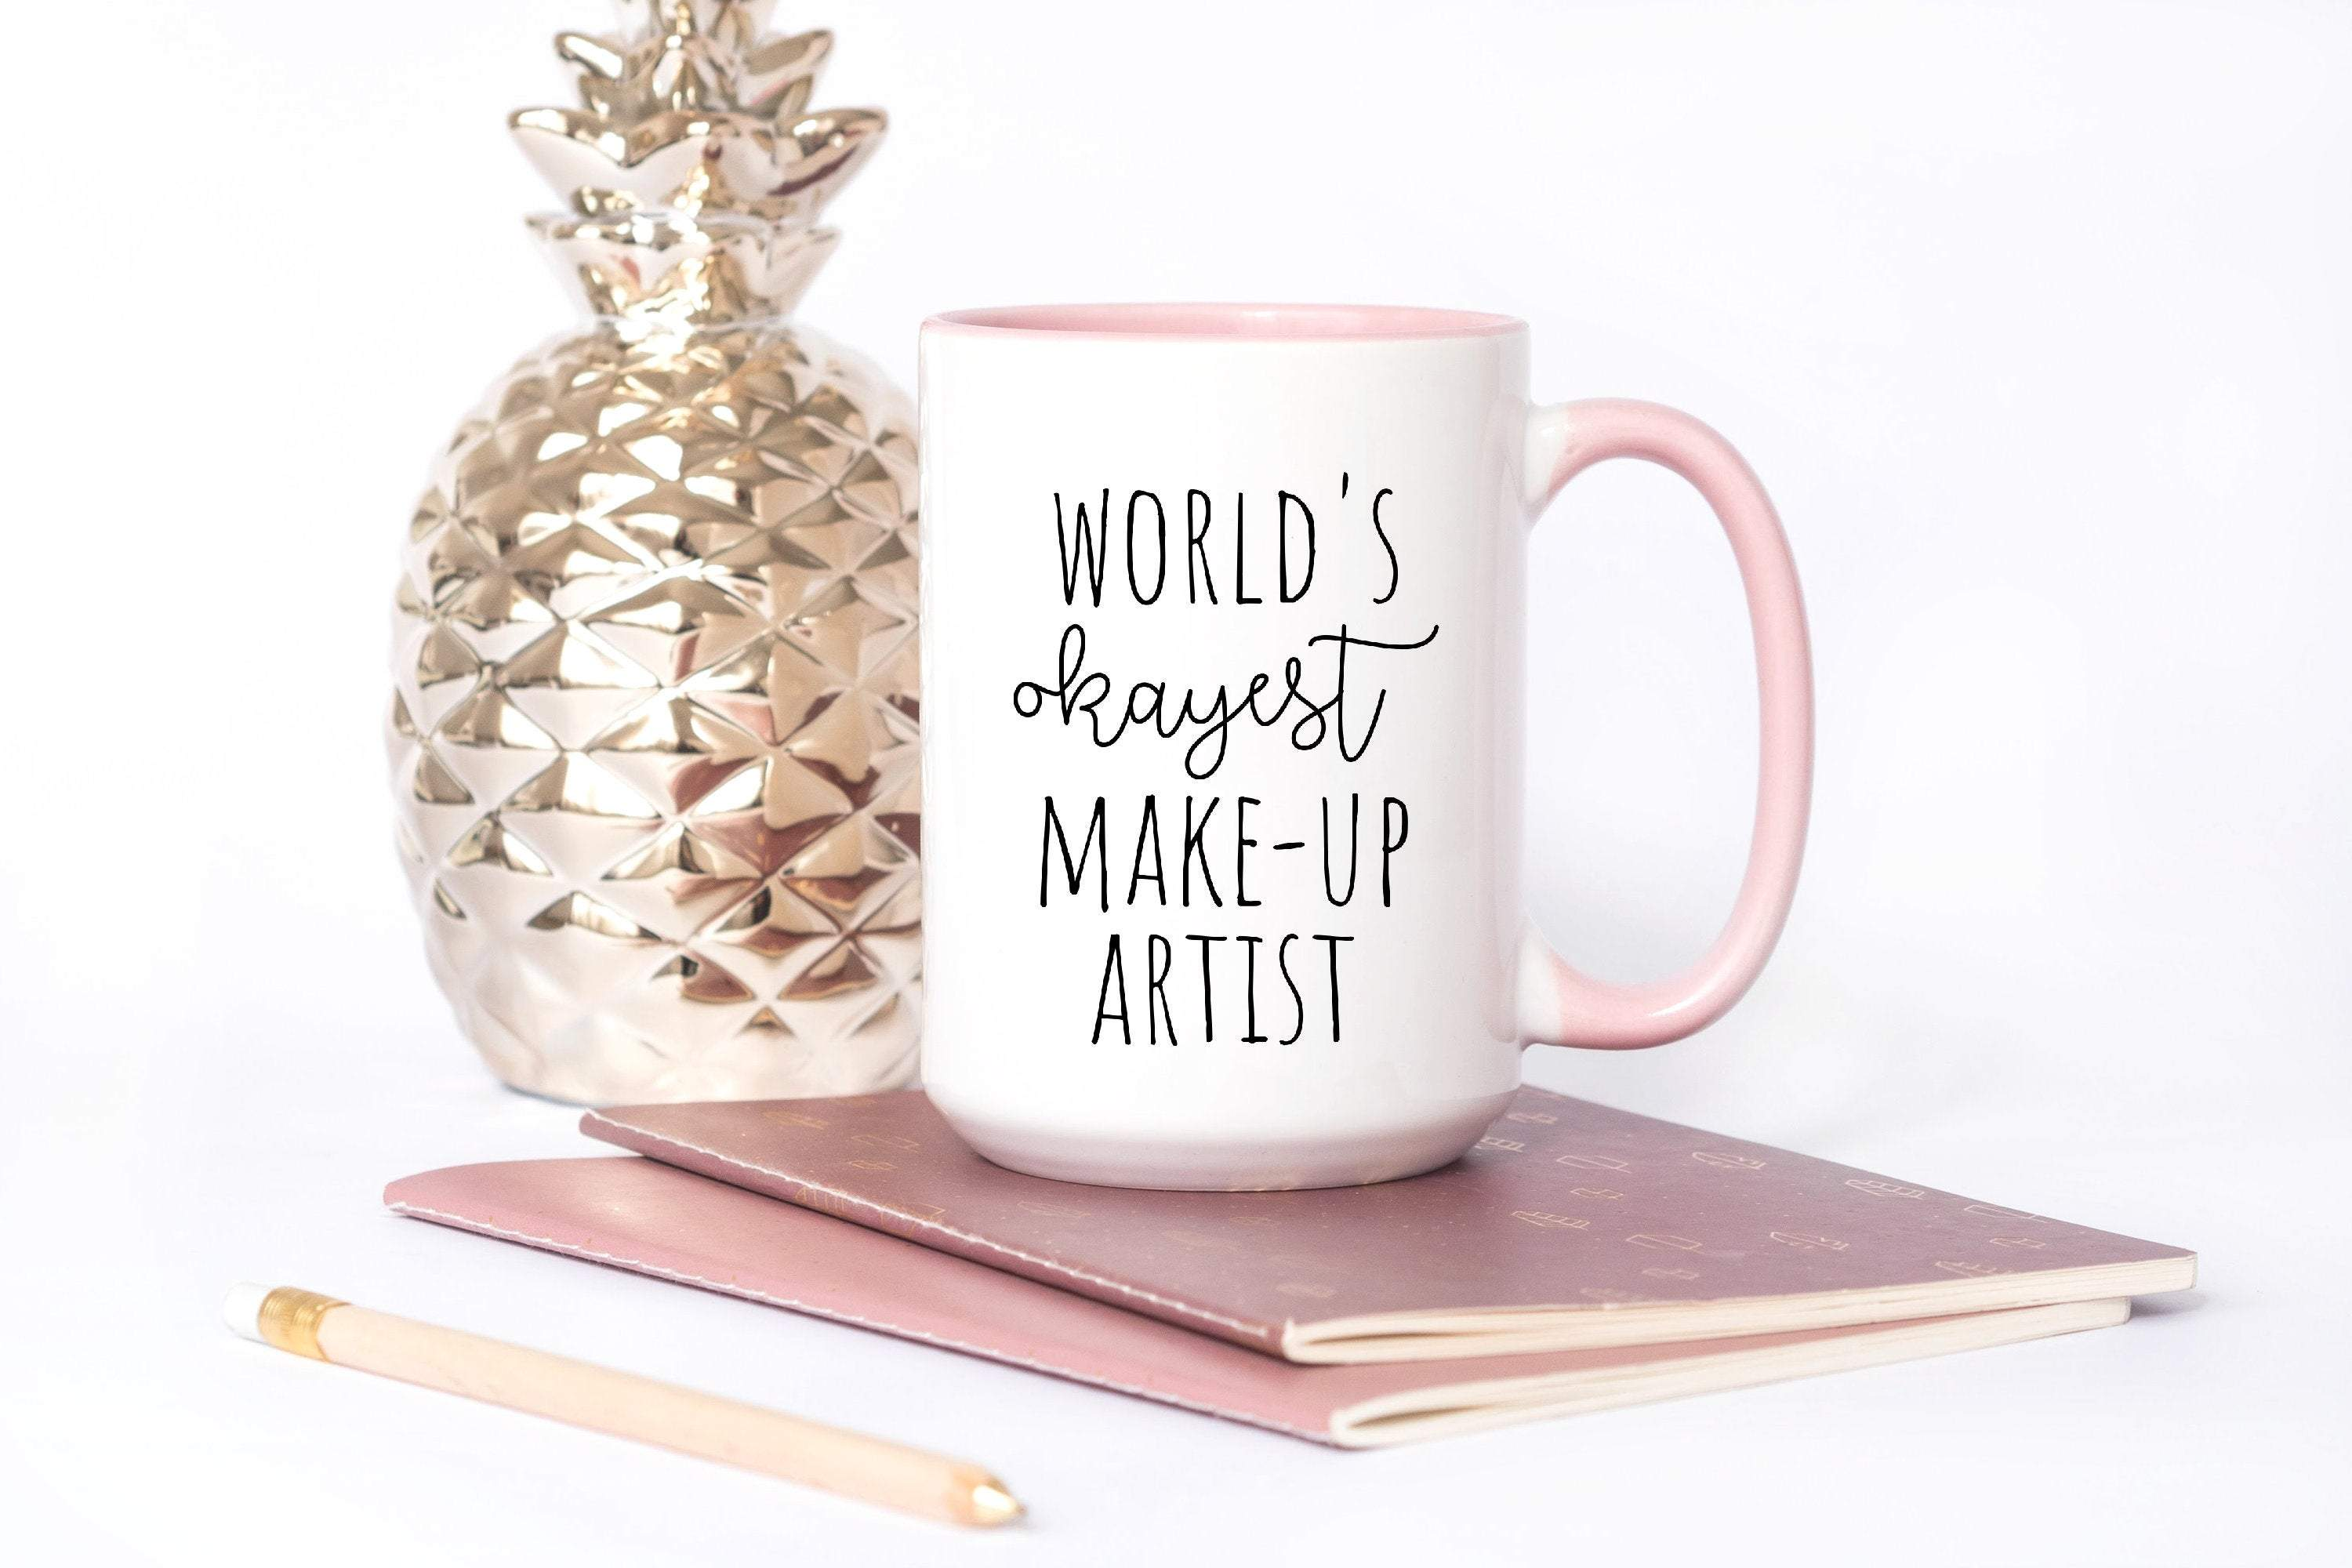 World's Okayest Make-Up Artist gift